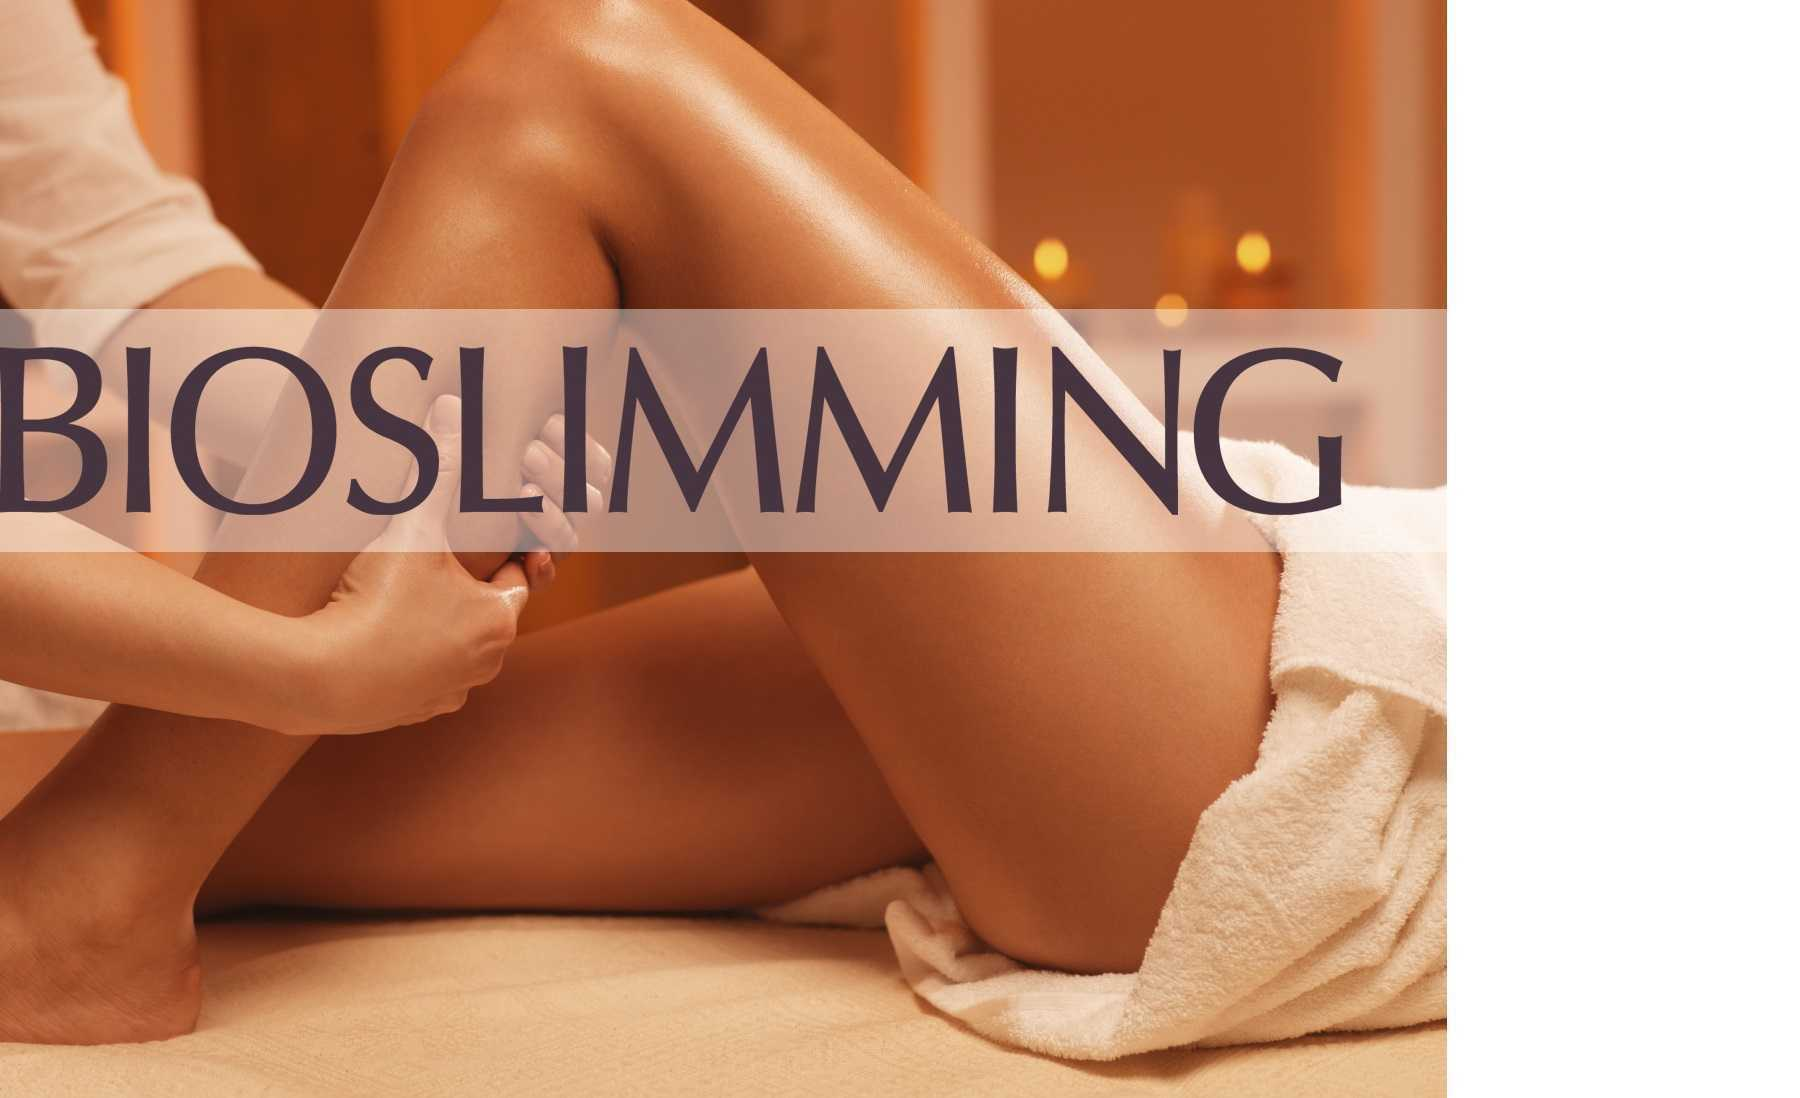 Luxushotel - bioslimming